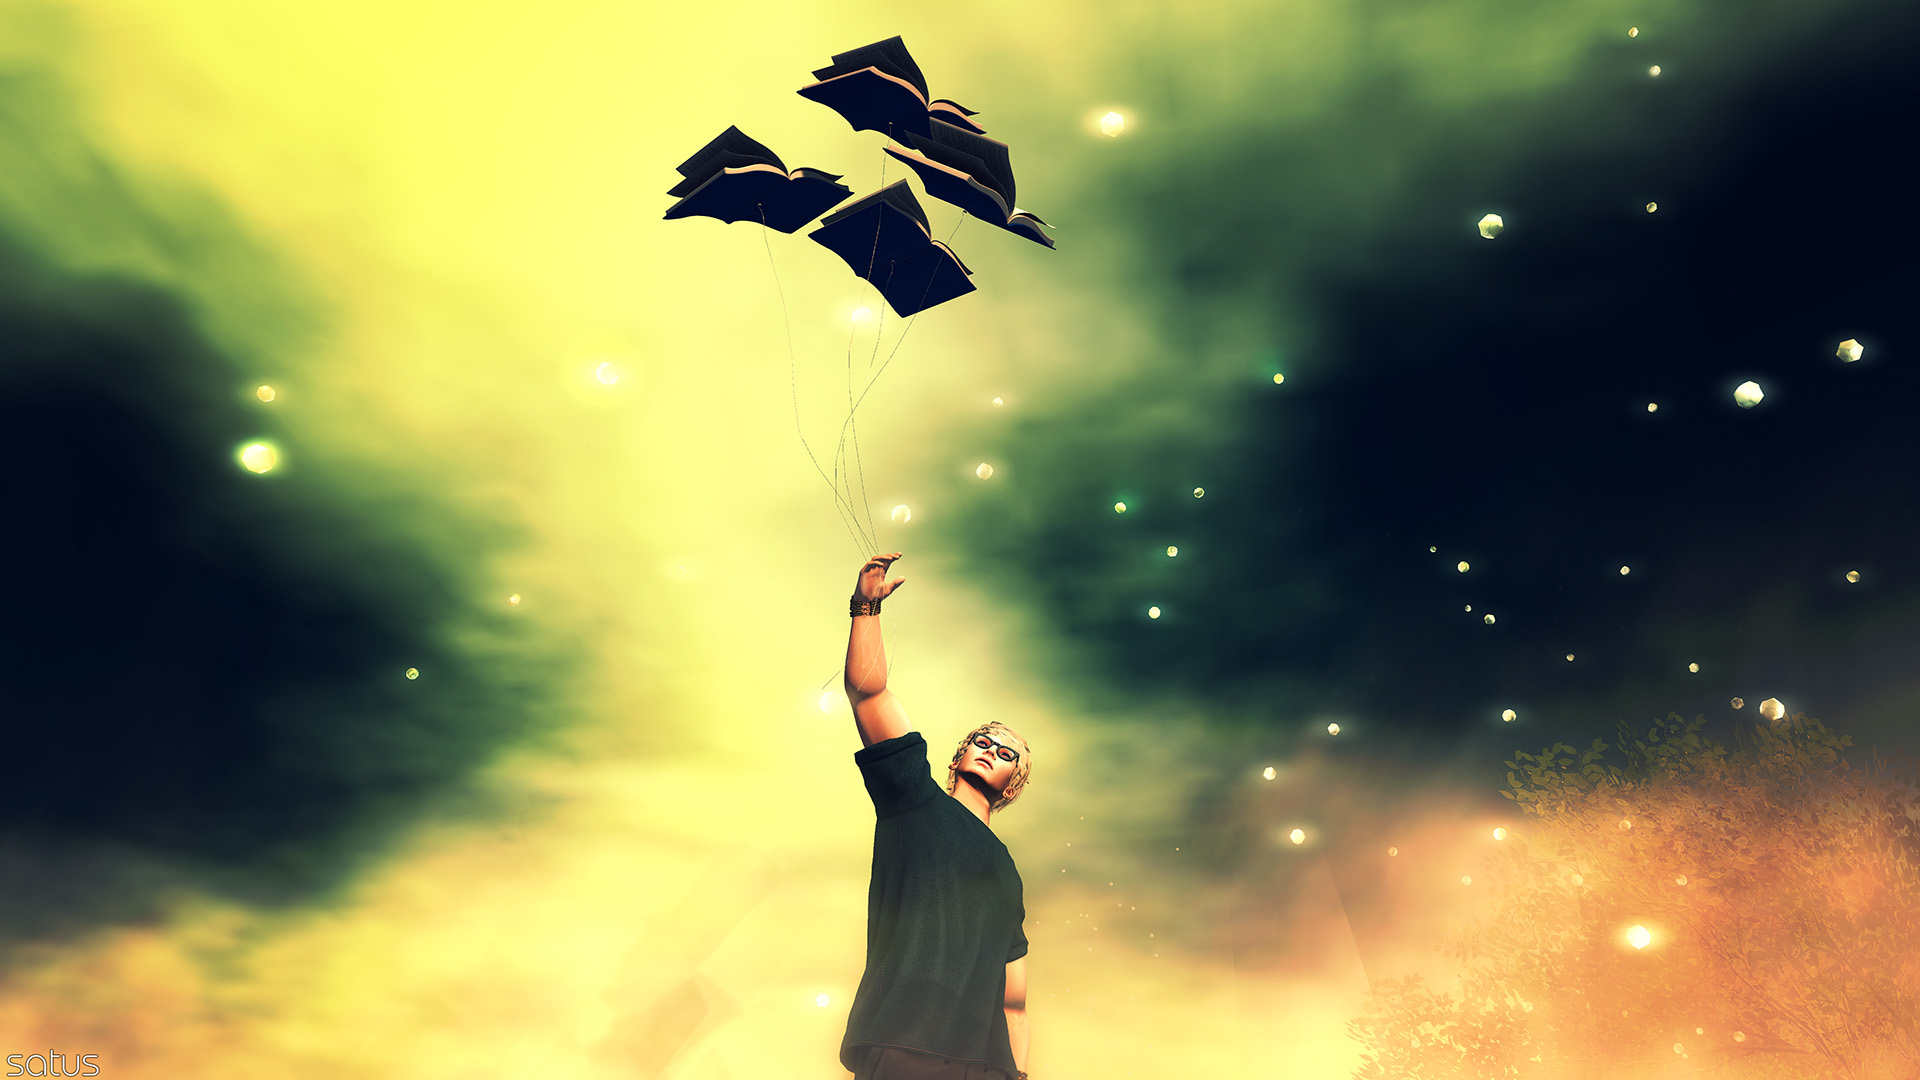 If books can fly